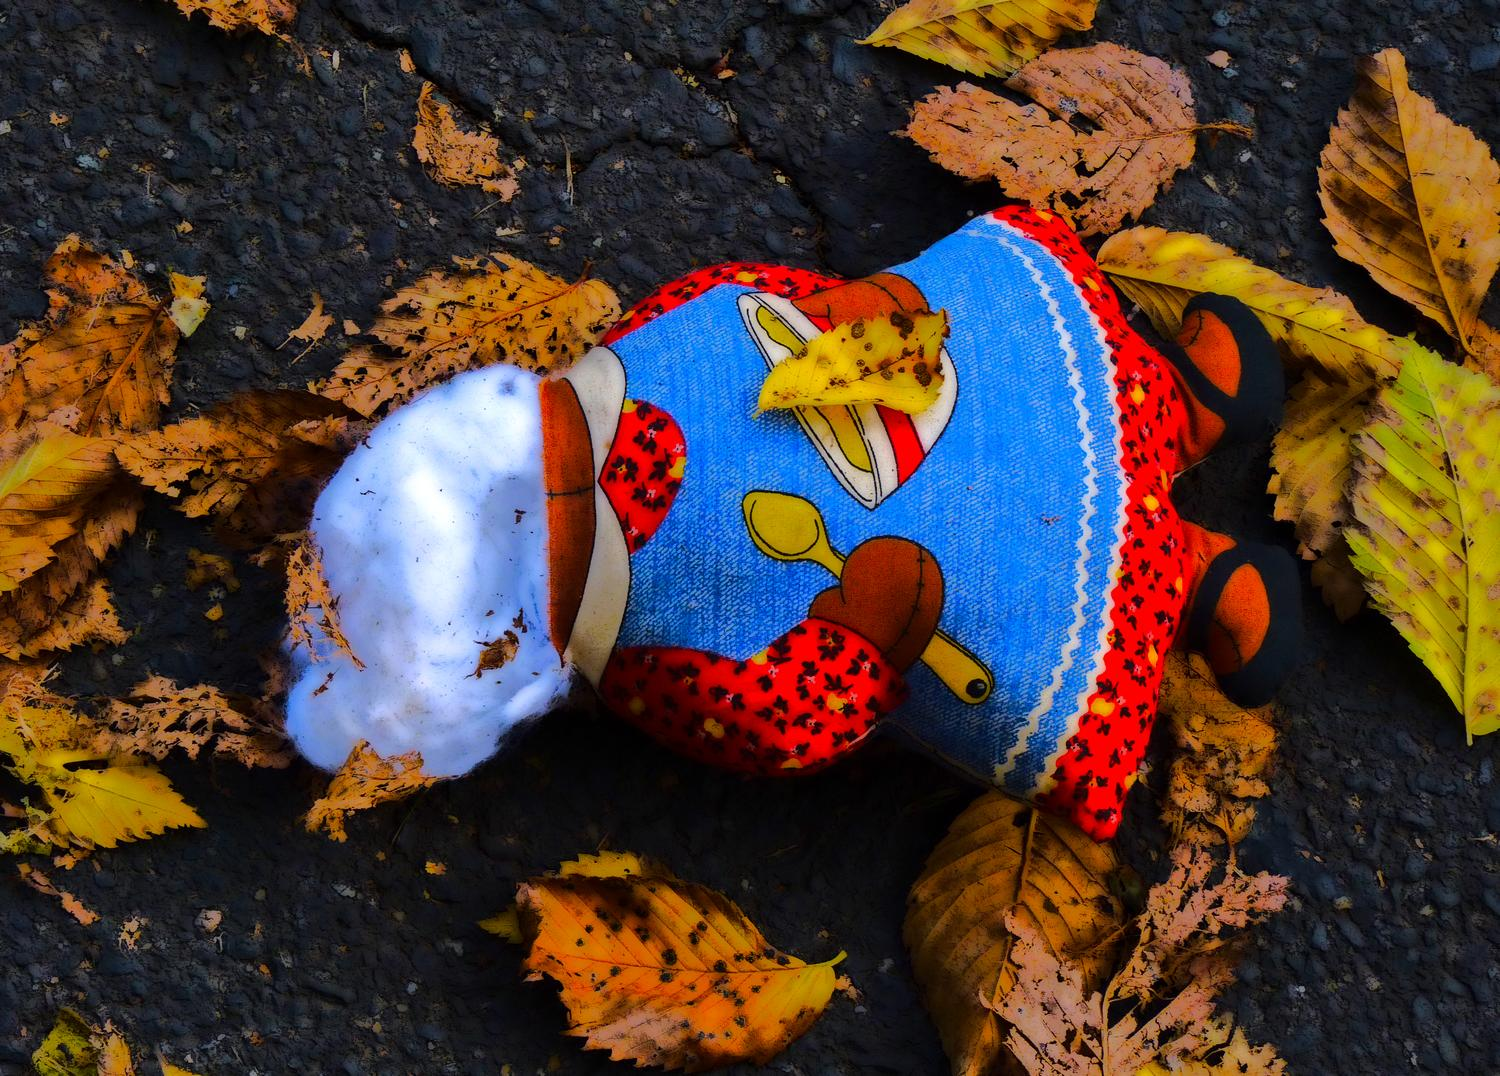 stuffed bear with no head in the leaves  - Warrenton, Virginia-  Panasonic DMC-FZ35 - Not so with Mrs. Bear. It's clear how she met her end. - Tony Karp, design, art, photography, techno-impressionist, techno-impressionism, aerial photography , drone , drones , dji , mavic pro , video , 3D printing - Books -